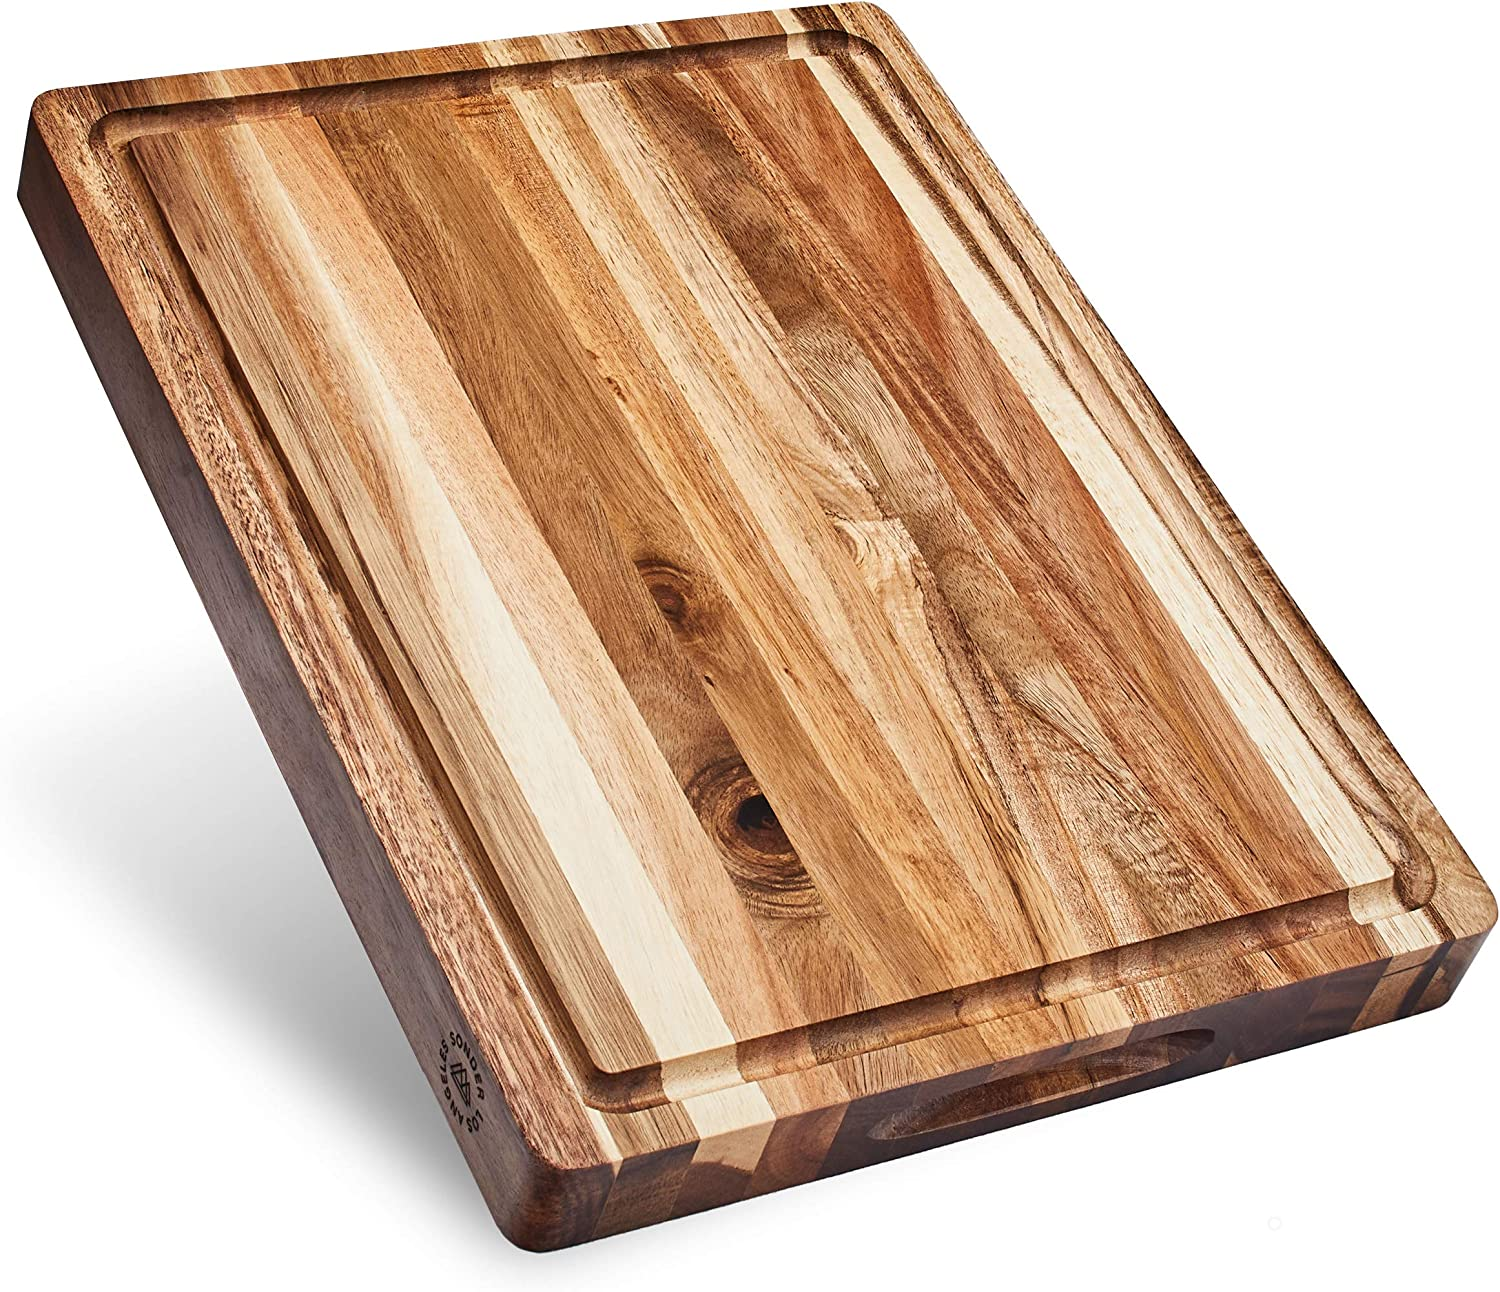 Amazon Com Sonder Los Angeles Large Multipurpose Sustainable Acacia Wood Cutting Board 16x12x1 5in Juice Groove Reversible With Cracker Holder Gift Box Included Kitchen Dining